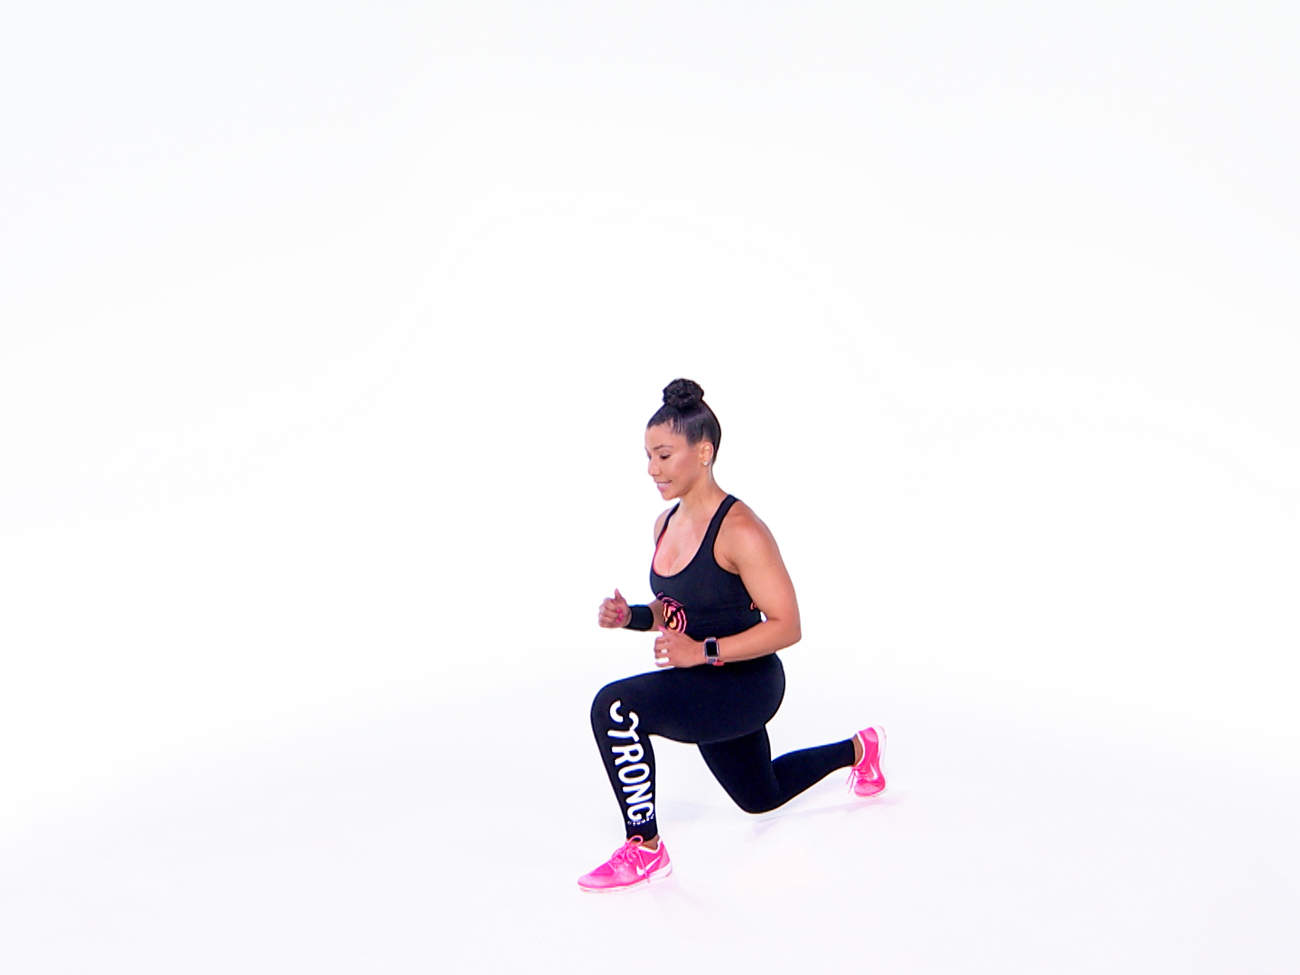 influencers-on-why-they-love-buddy-workouts-video